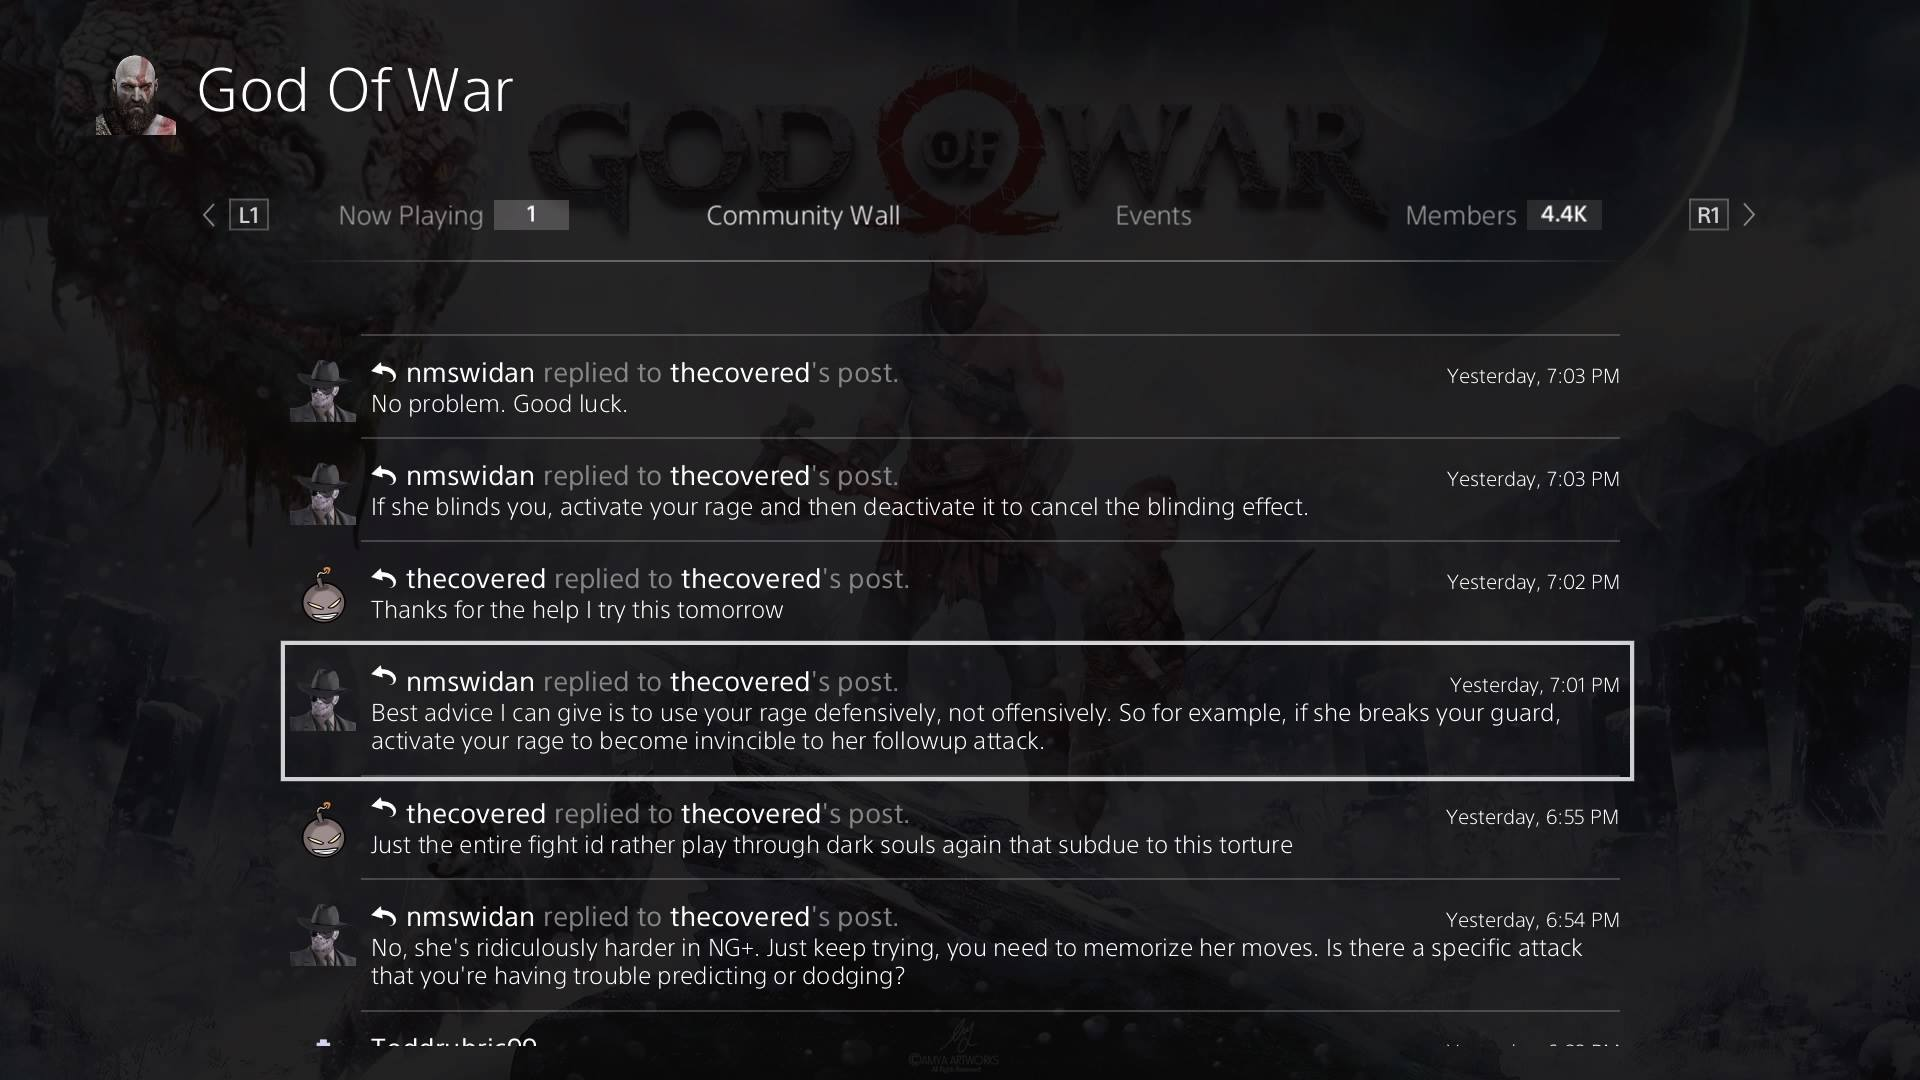 Players share advice in a God of War Community message board on Sony's PSN Network